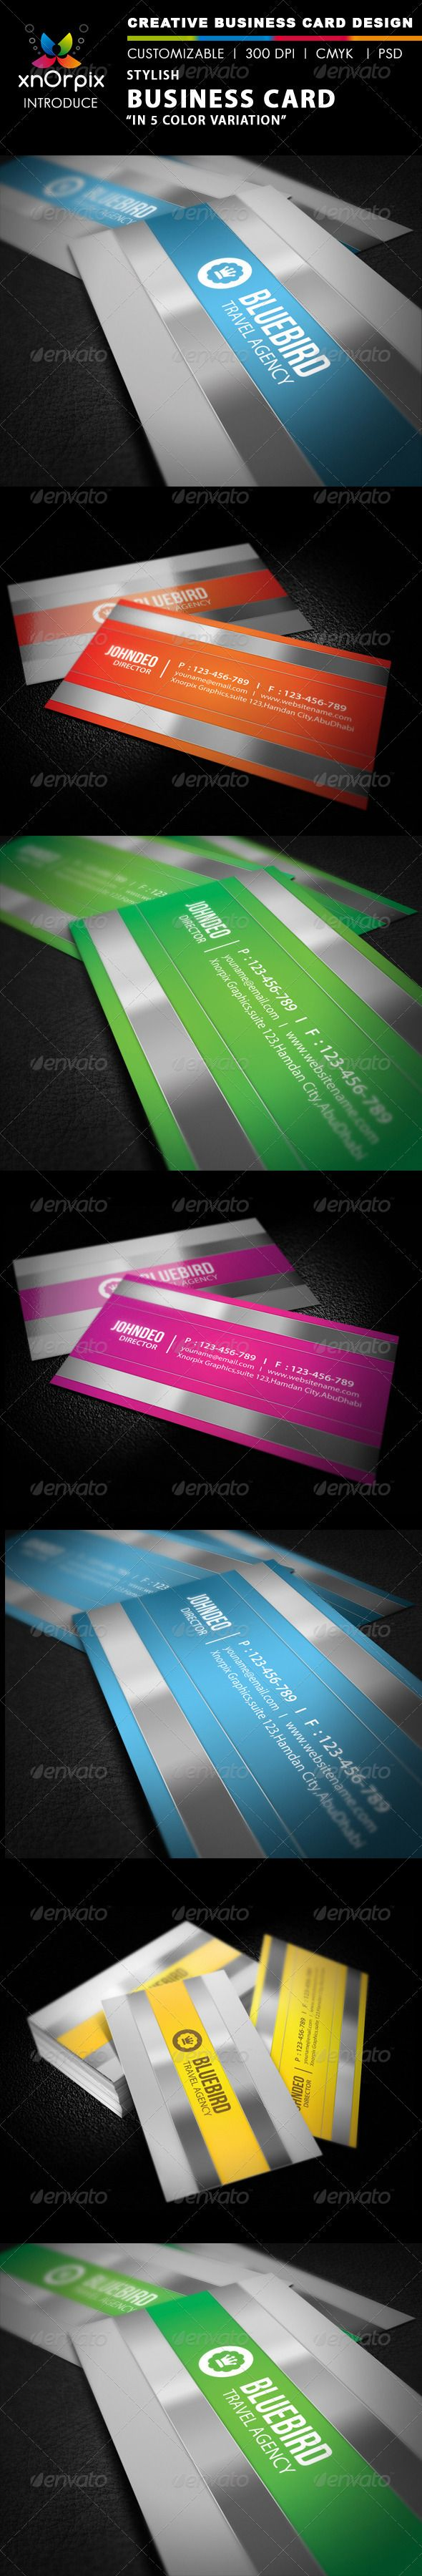 Stylish Business Card - Corporate Business Card Template PSD. Download here: http://graphicriver.net/item/stylish-business-card/2044848?s_rank=265&ref=yinkira